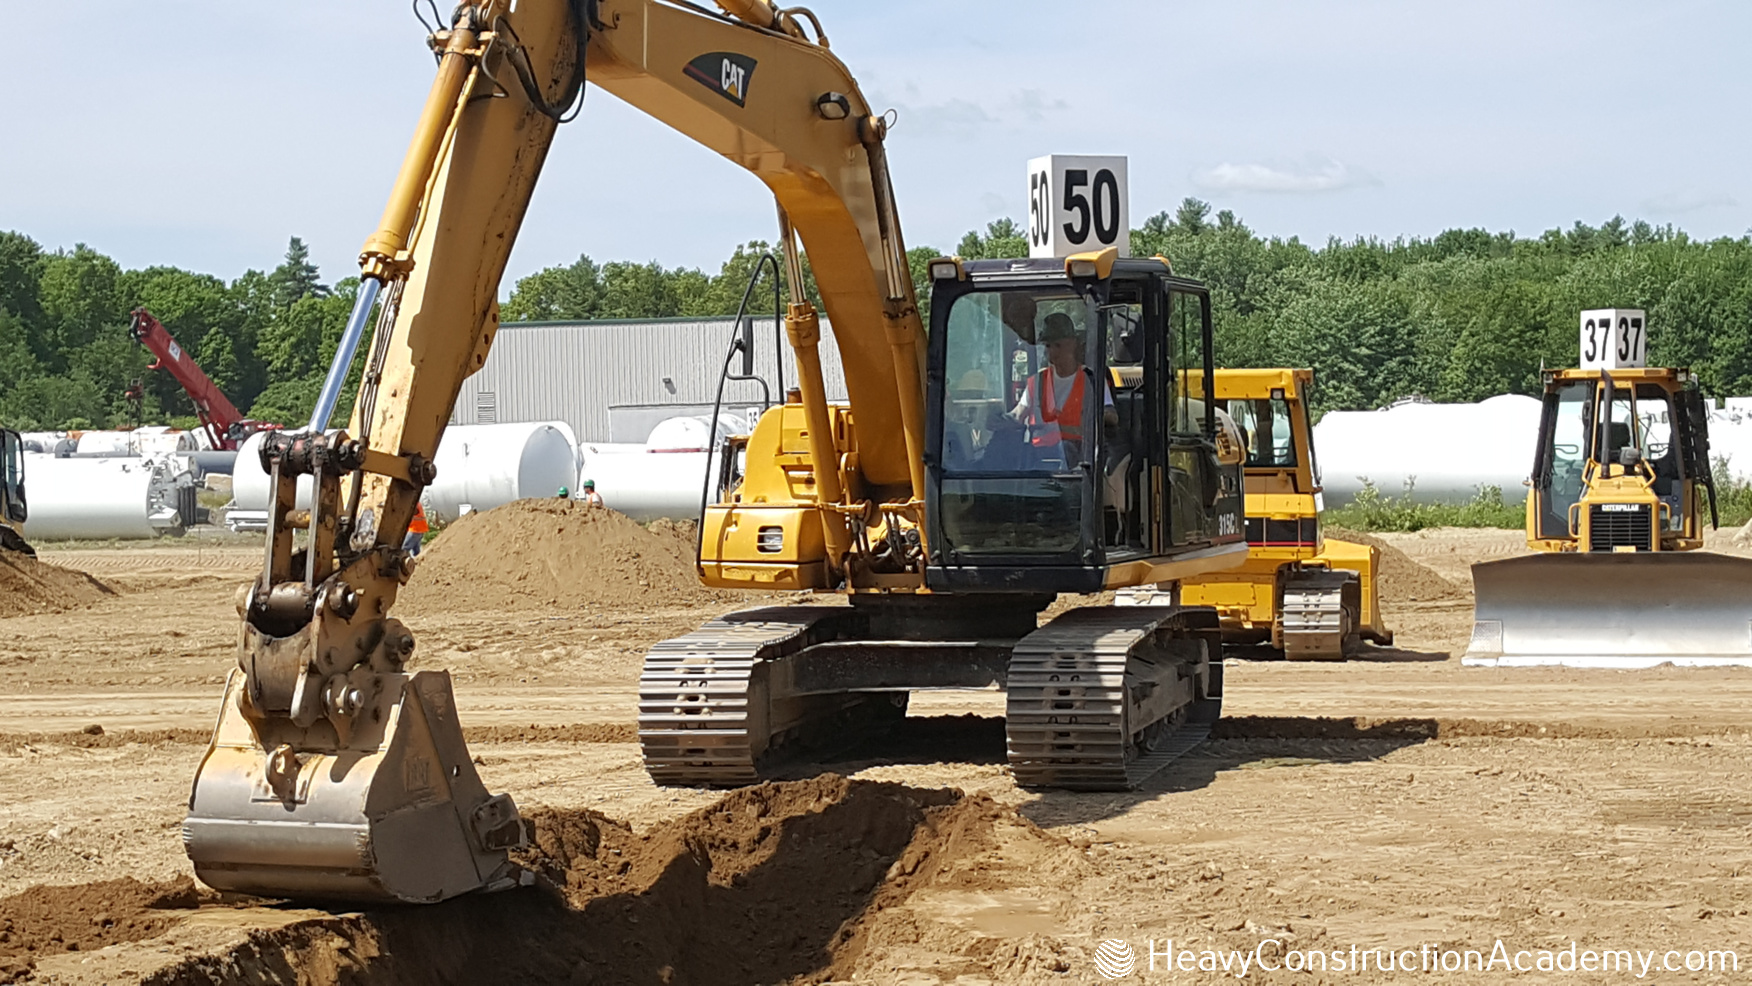 view of heavy equipment - photo #13